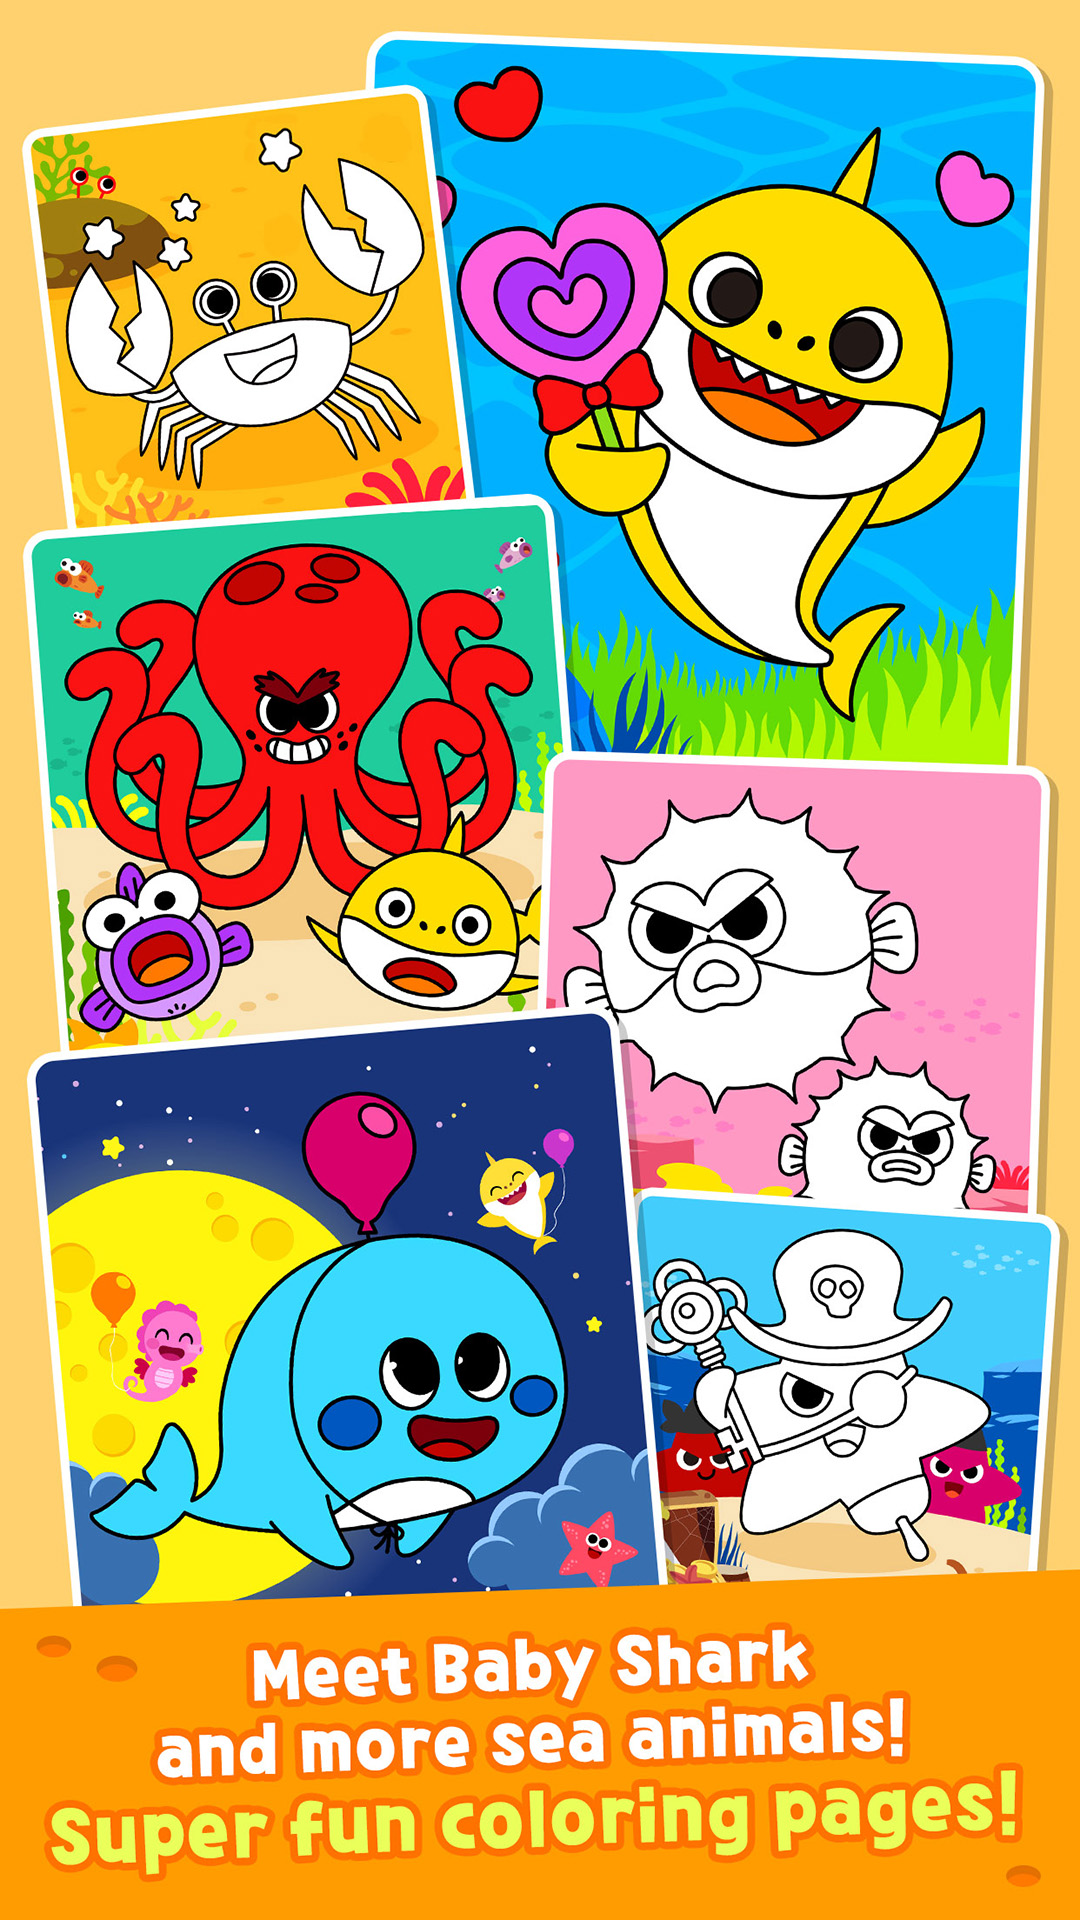 Pinkfong Baby Shark Coloring Book Amazon De Apps Fur Android